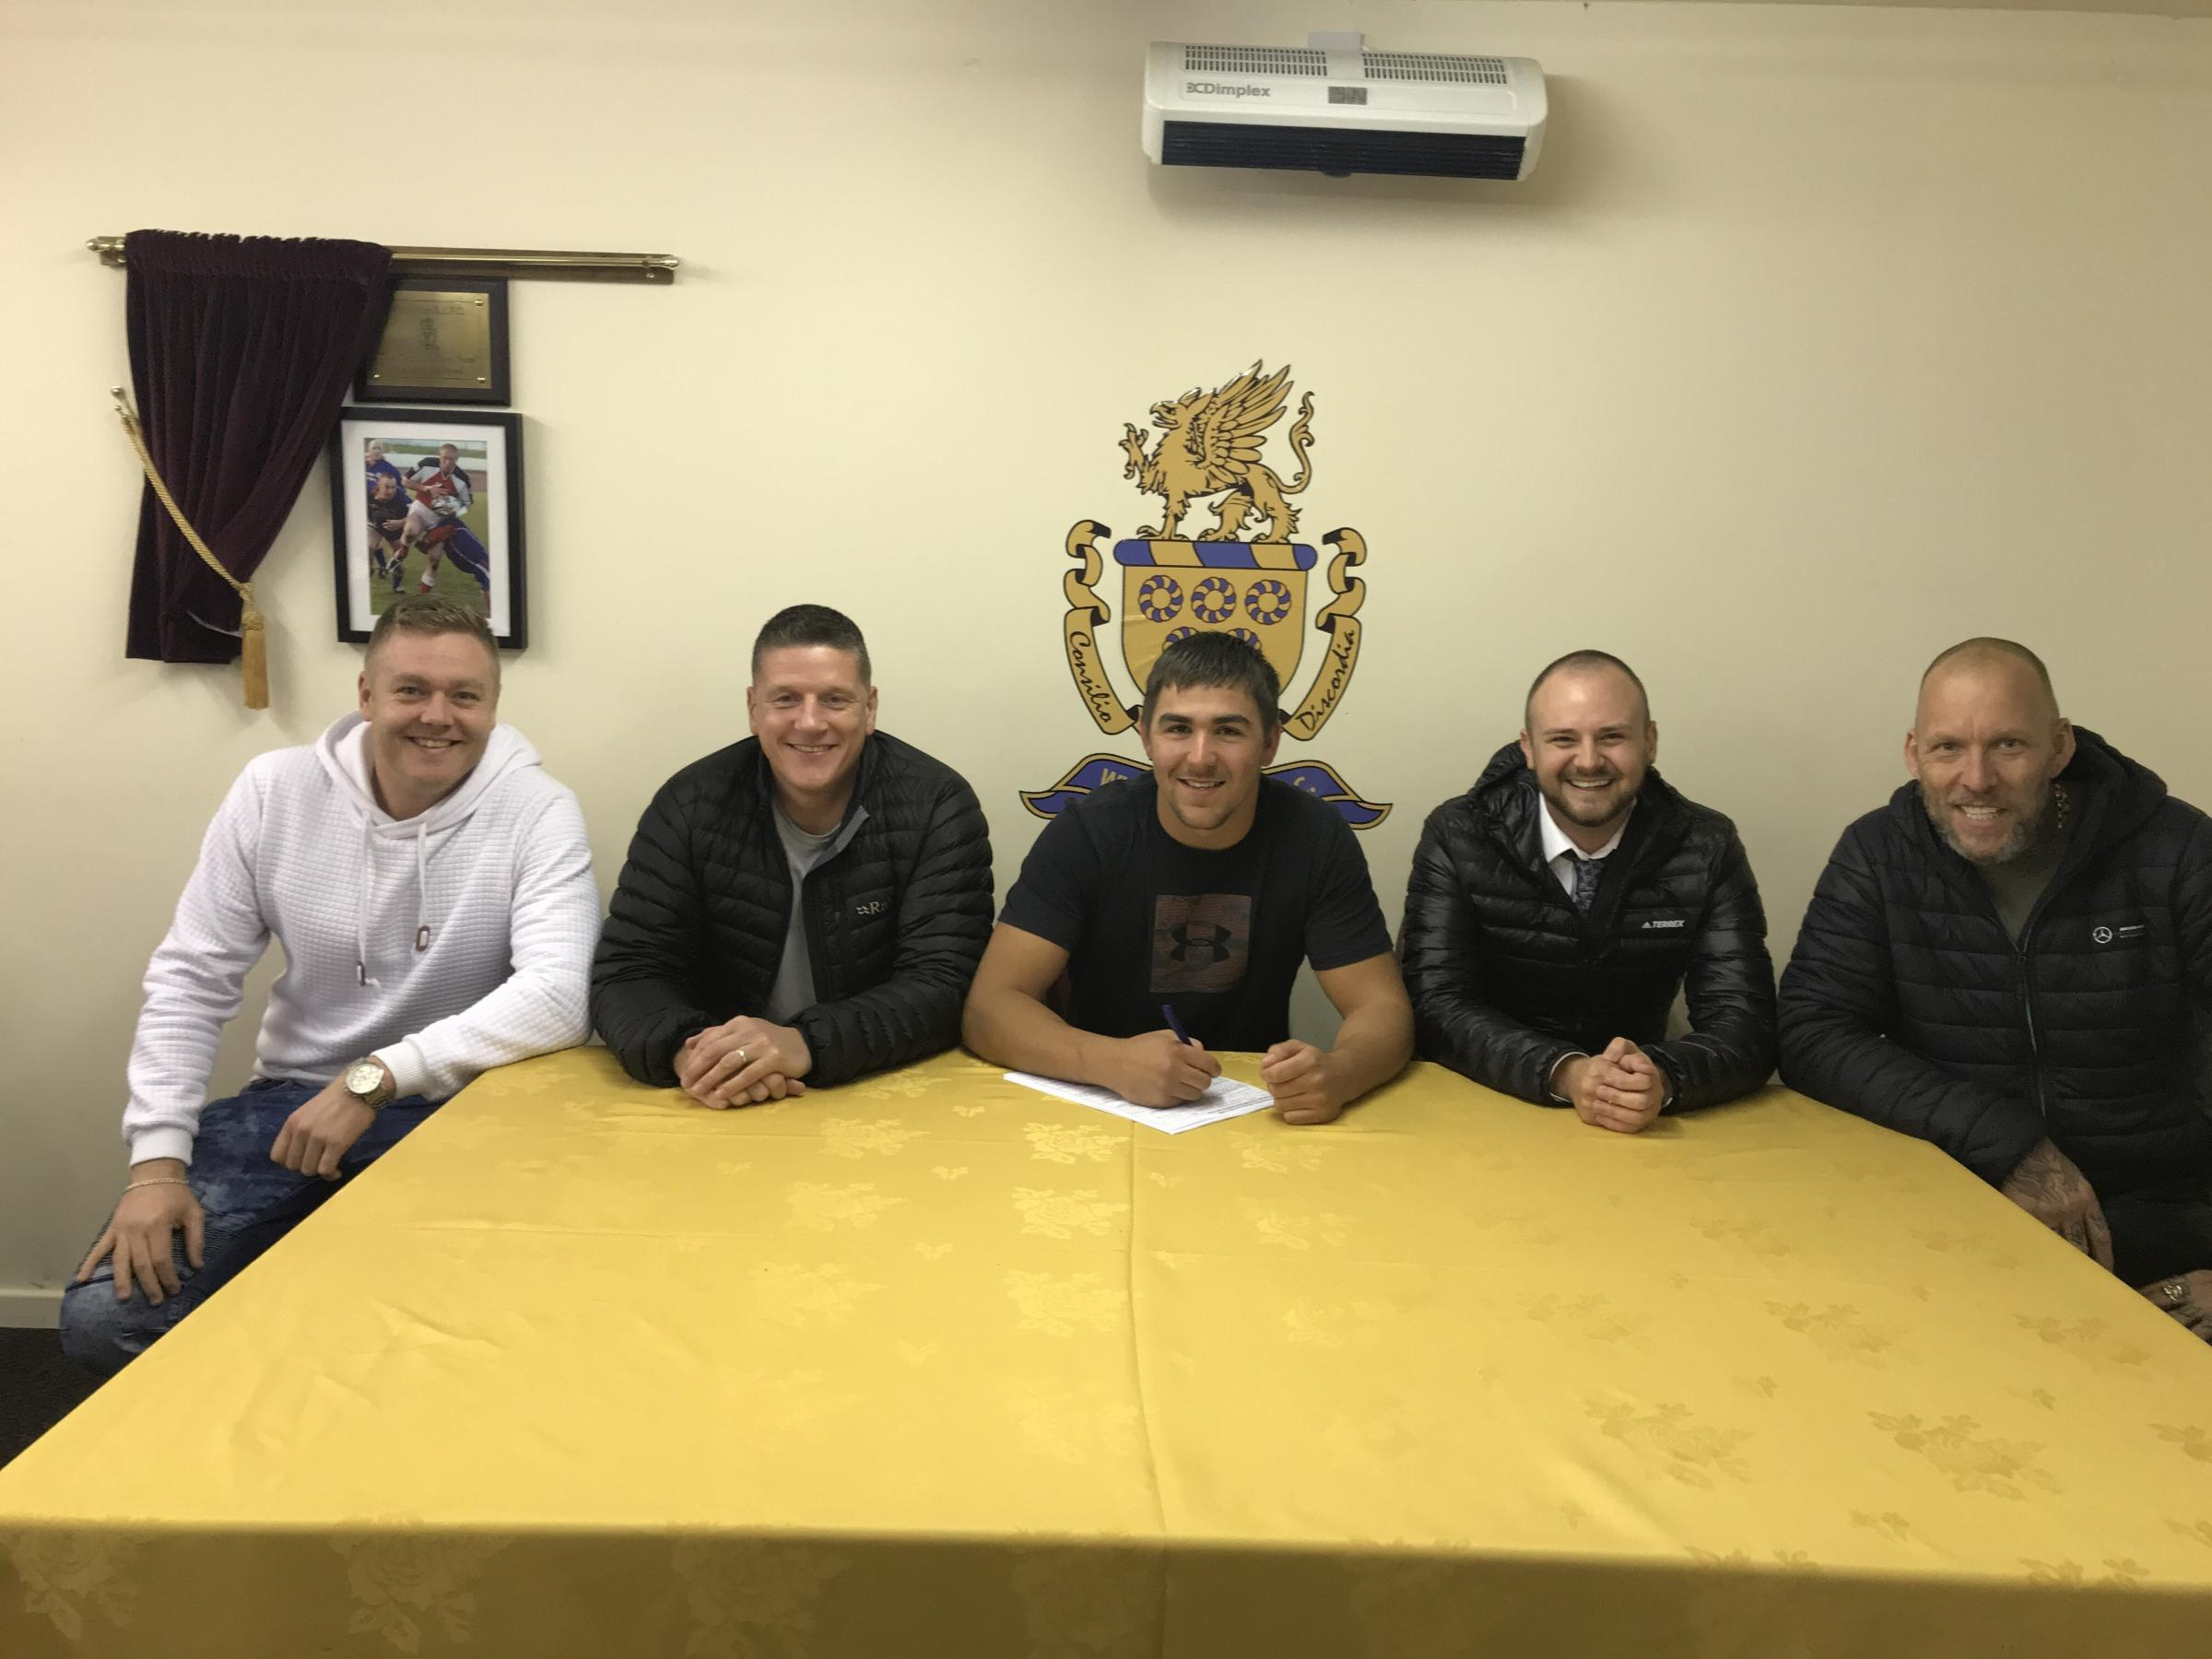 Sam Forrester signs for Whitehaven RLFC watched by, from left, director Andrew Canavan, assistant coach Jonty Gorley and directors Matthew Stephenson and Jason Ball